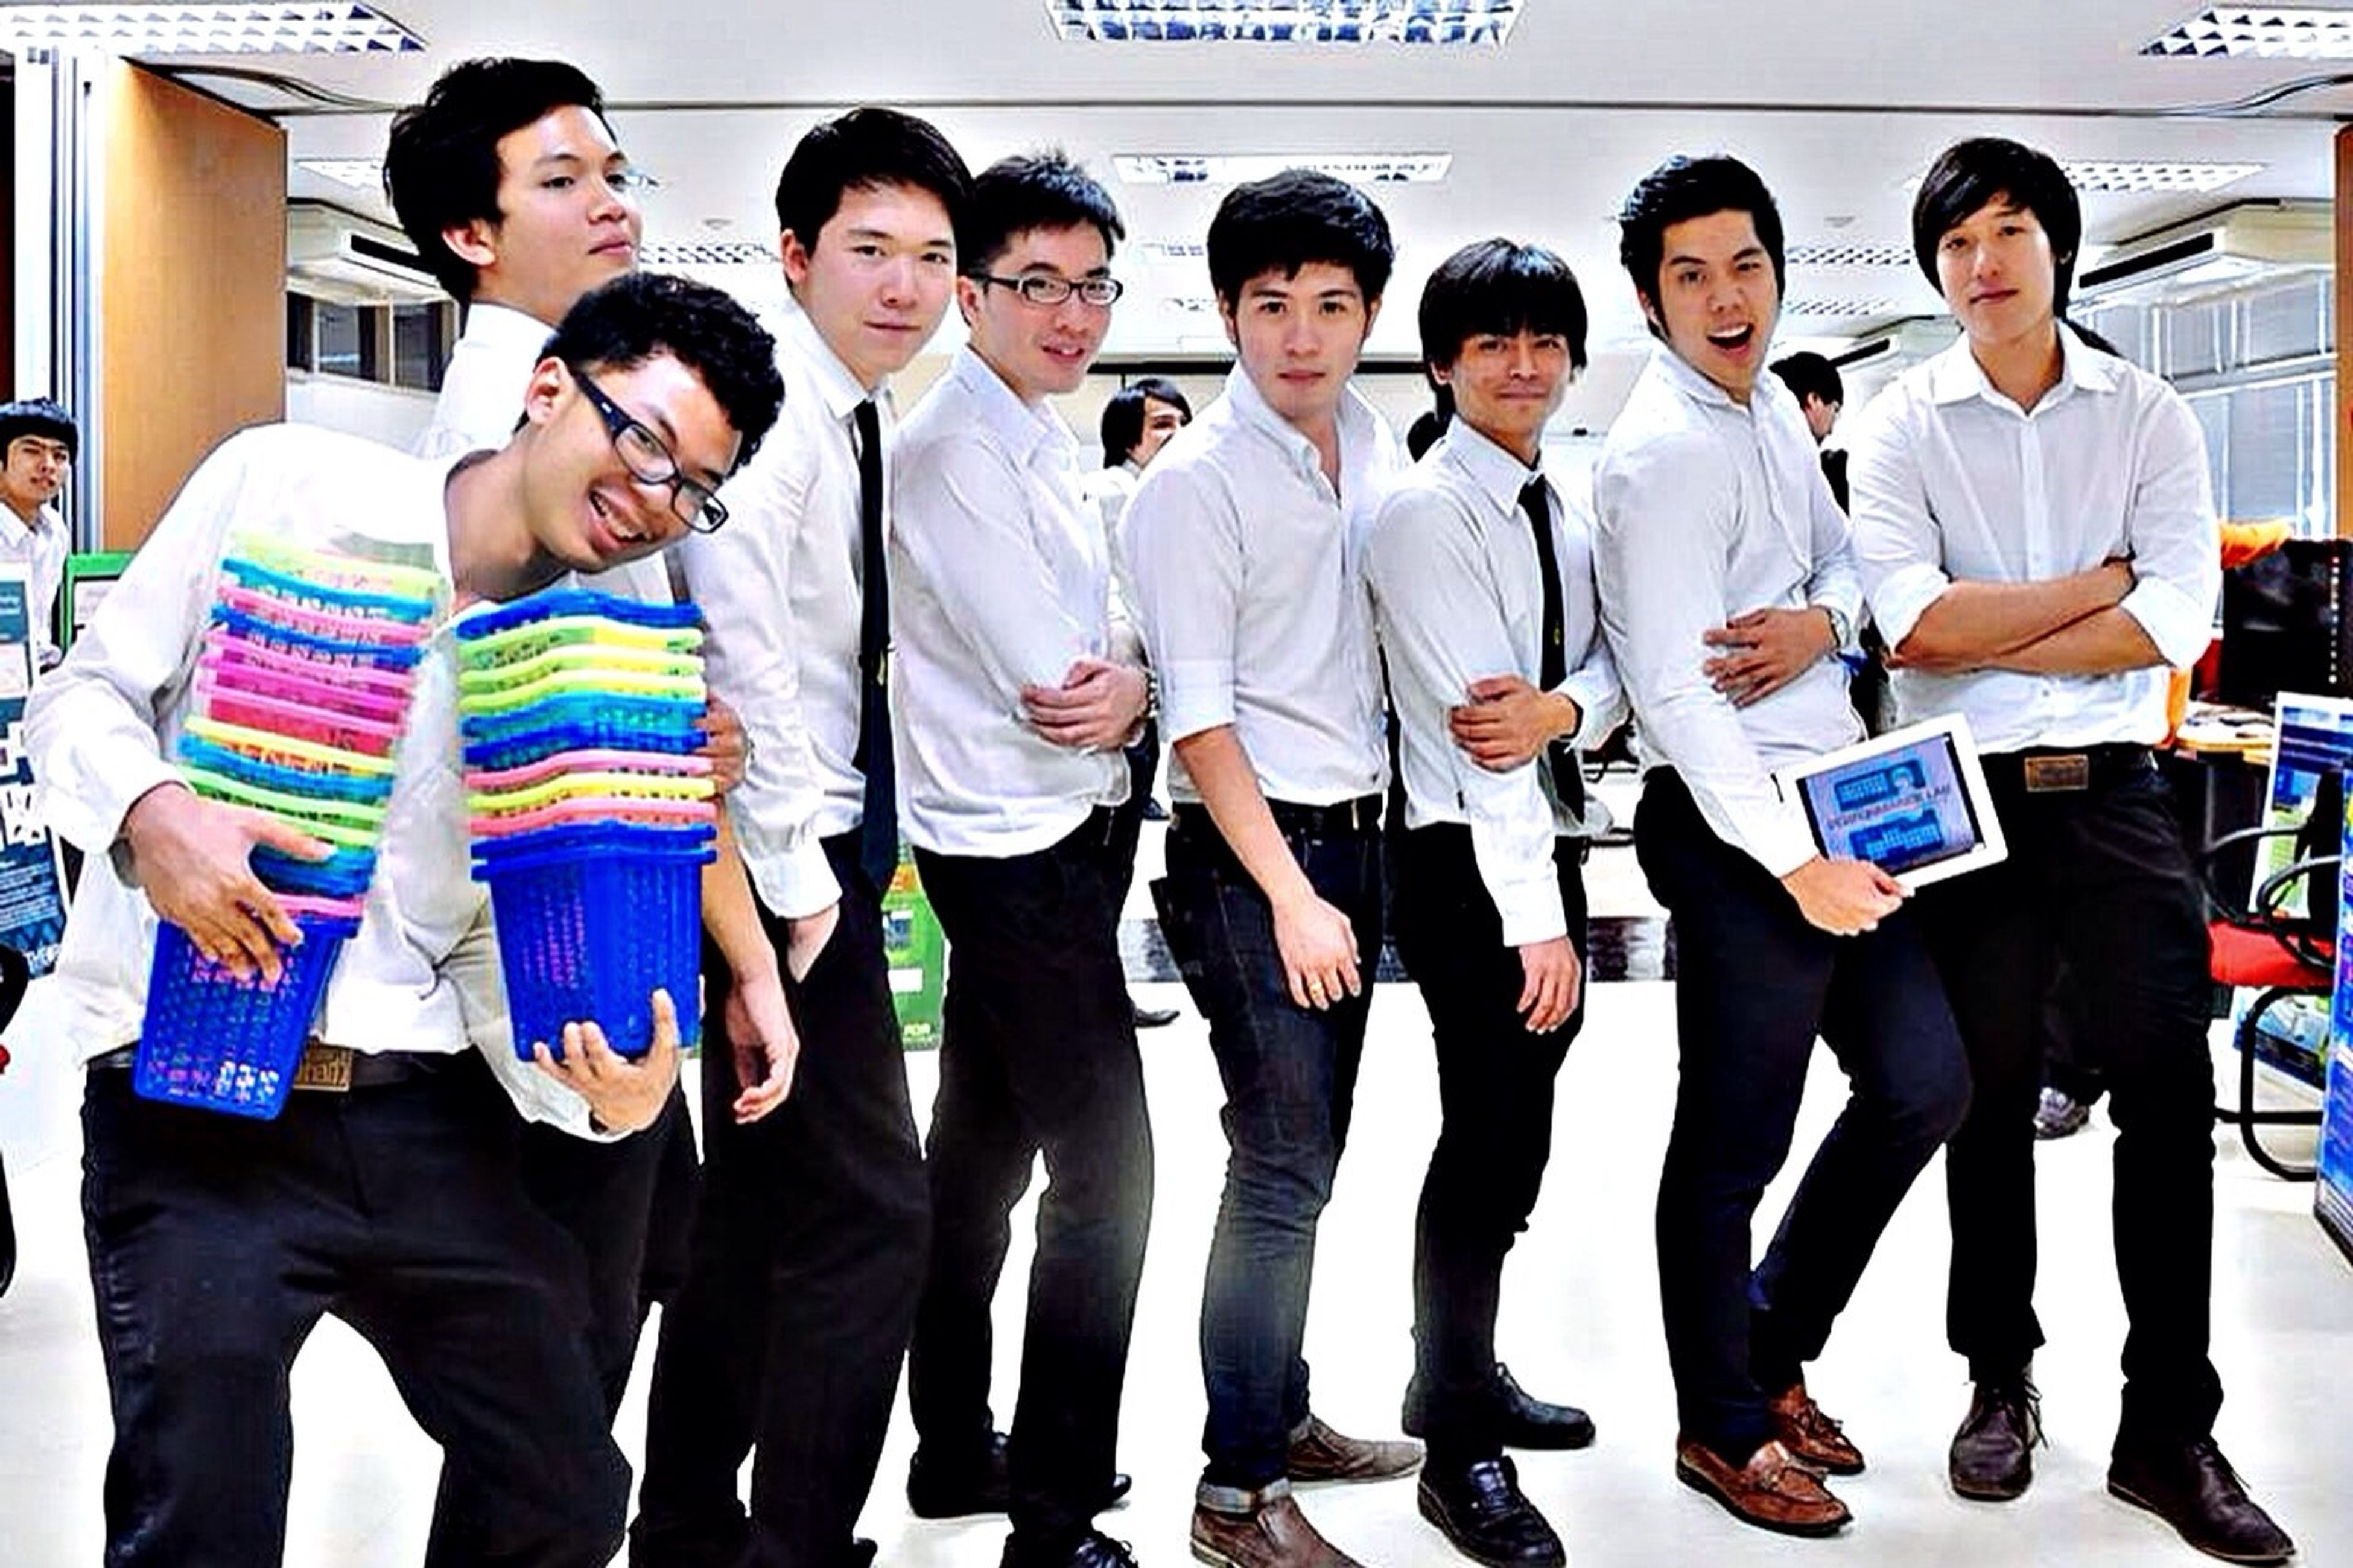 togetherness, lifestyles, bonding, leisure activity, friendship, casual clothing, young men, love, standing, men, front view, person, happiness, young adult, fun, family, side by side